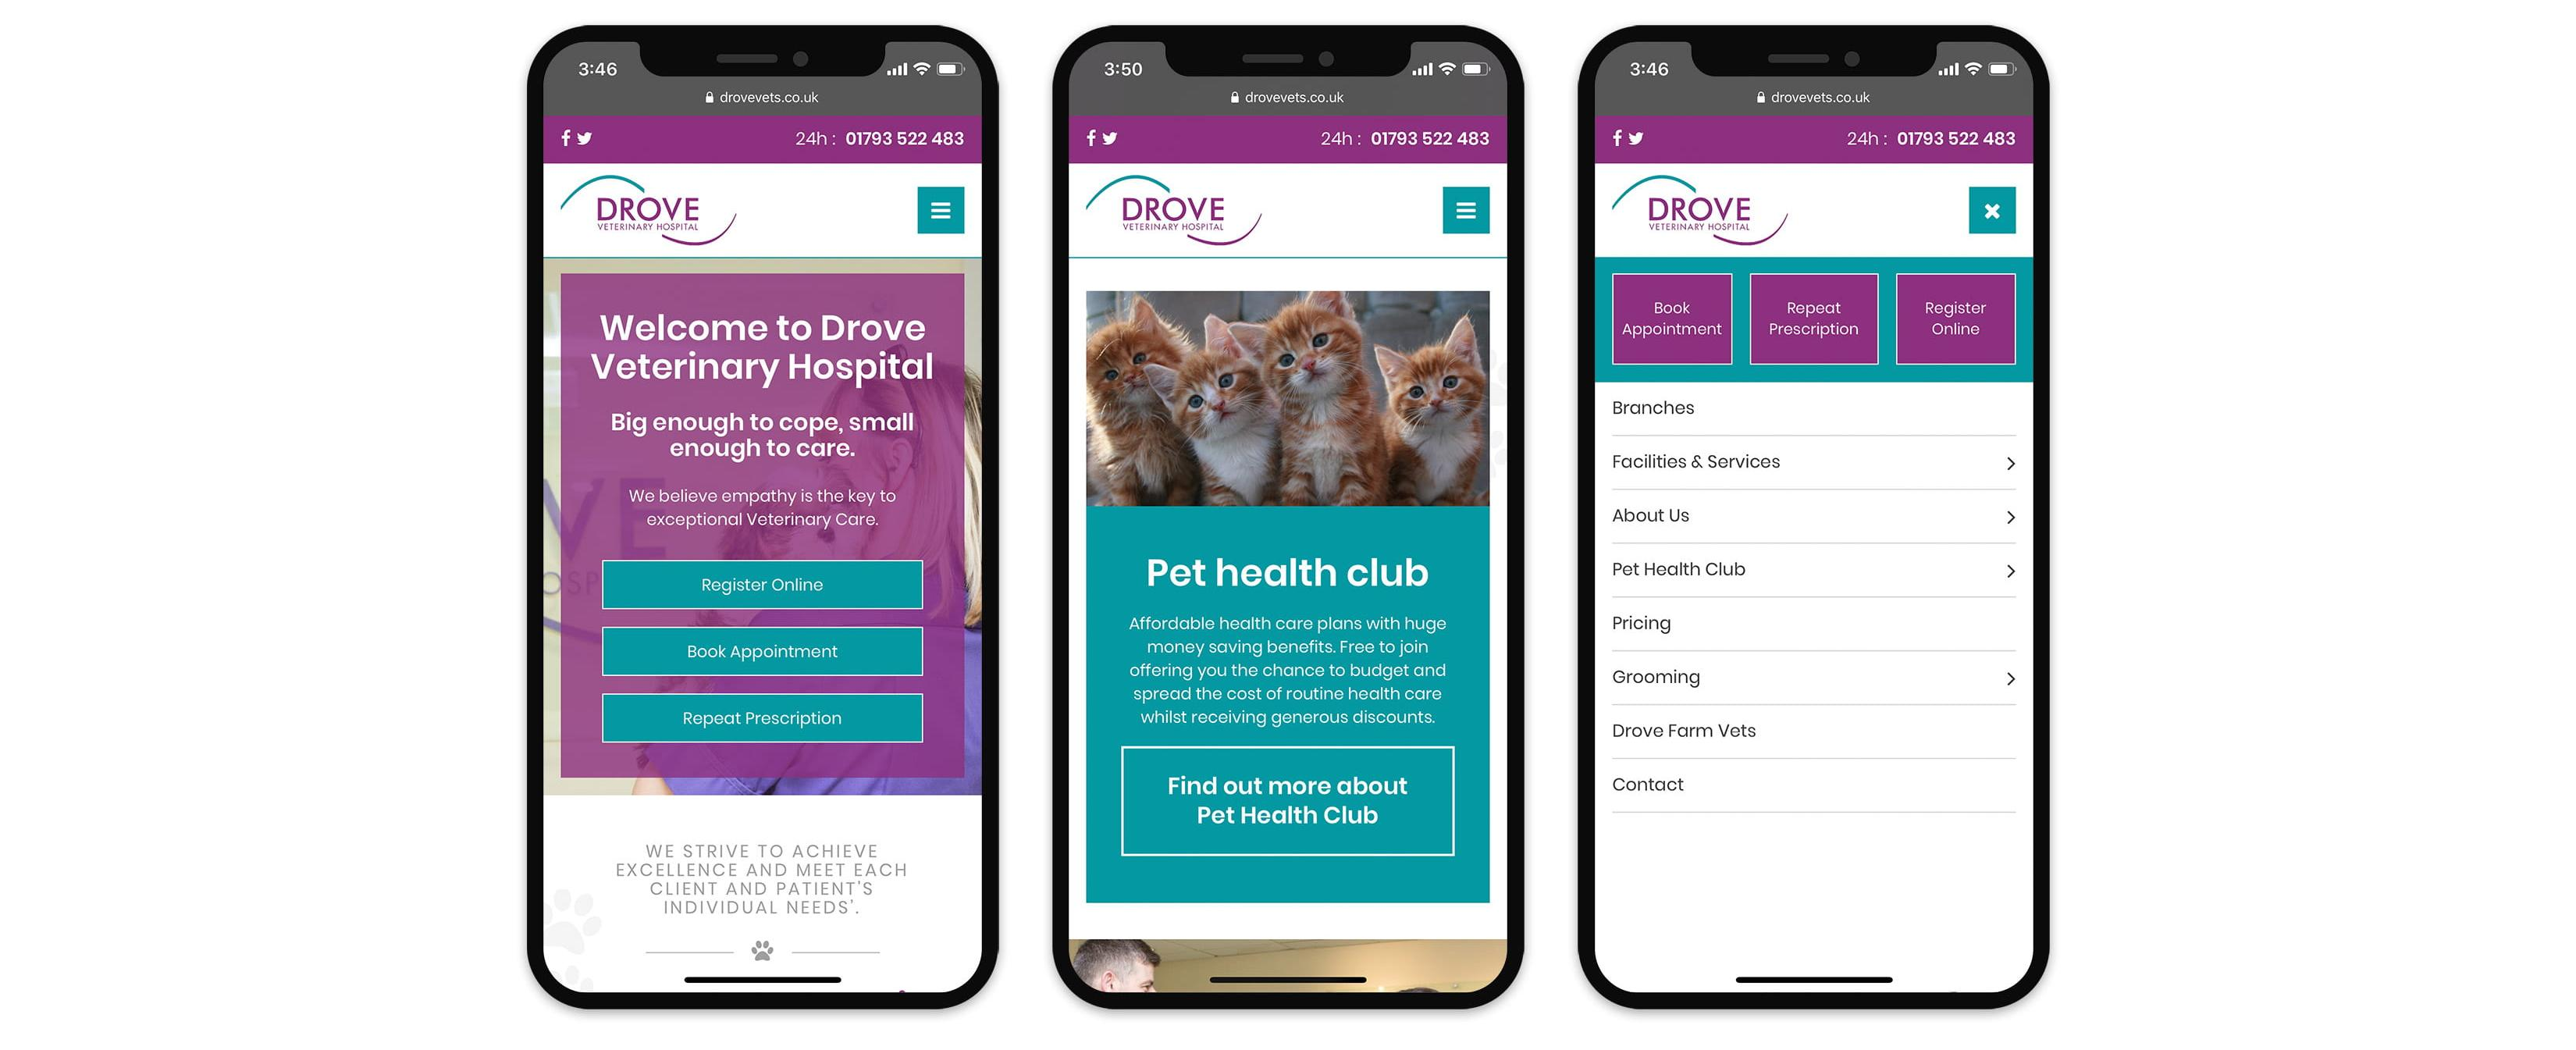 Drove Vets mobile website design